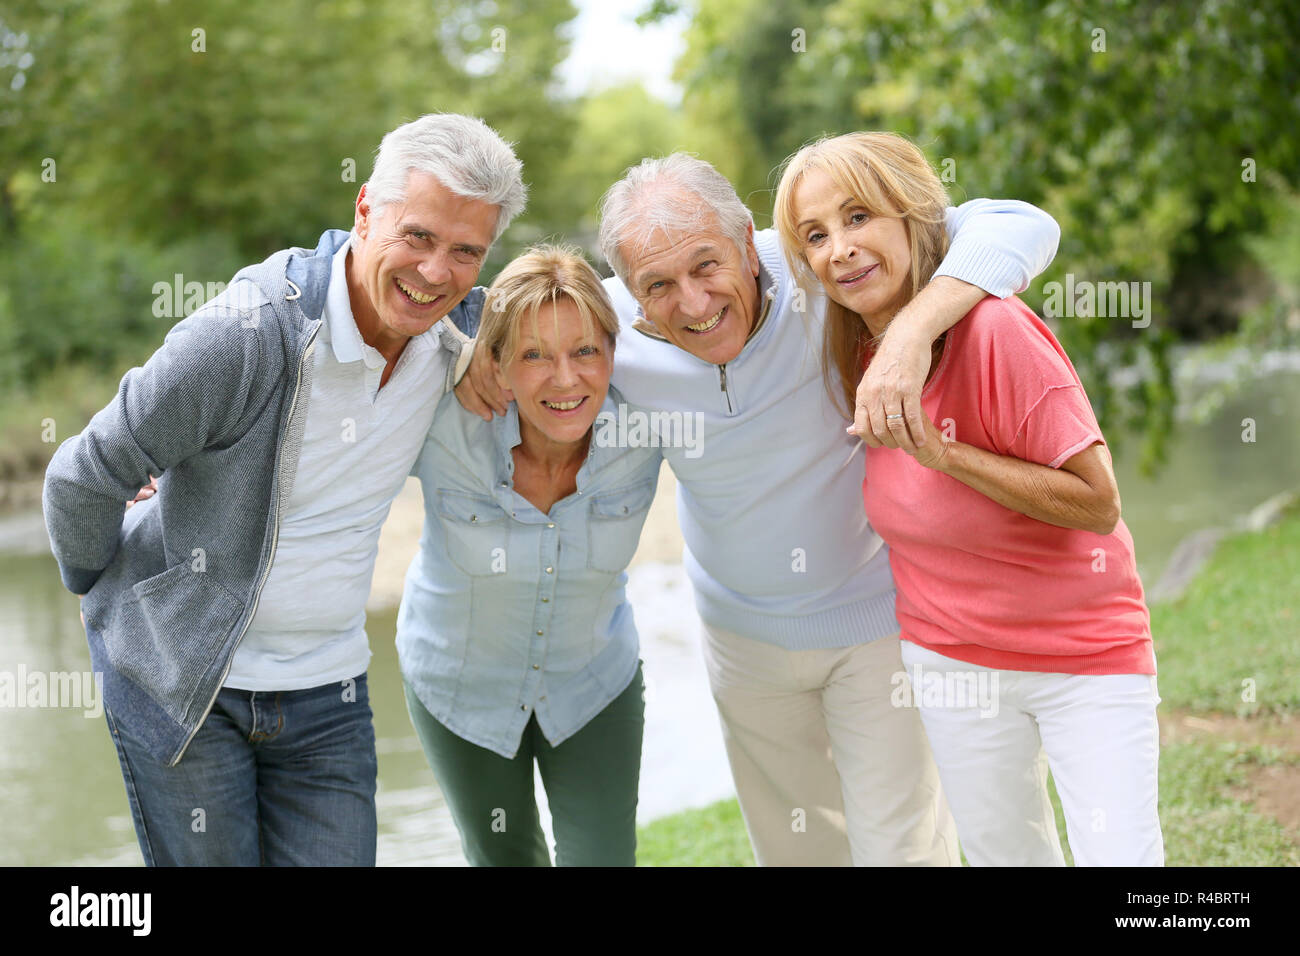 Senior couples having a good time in countryside - Stock Image